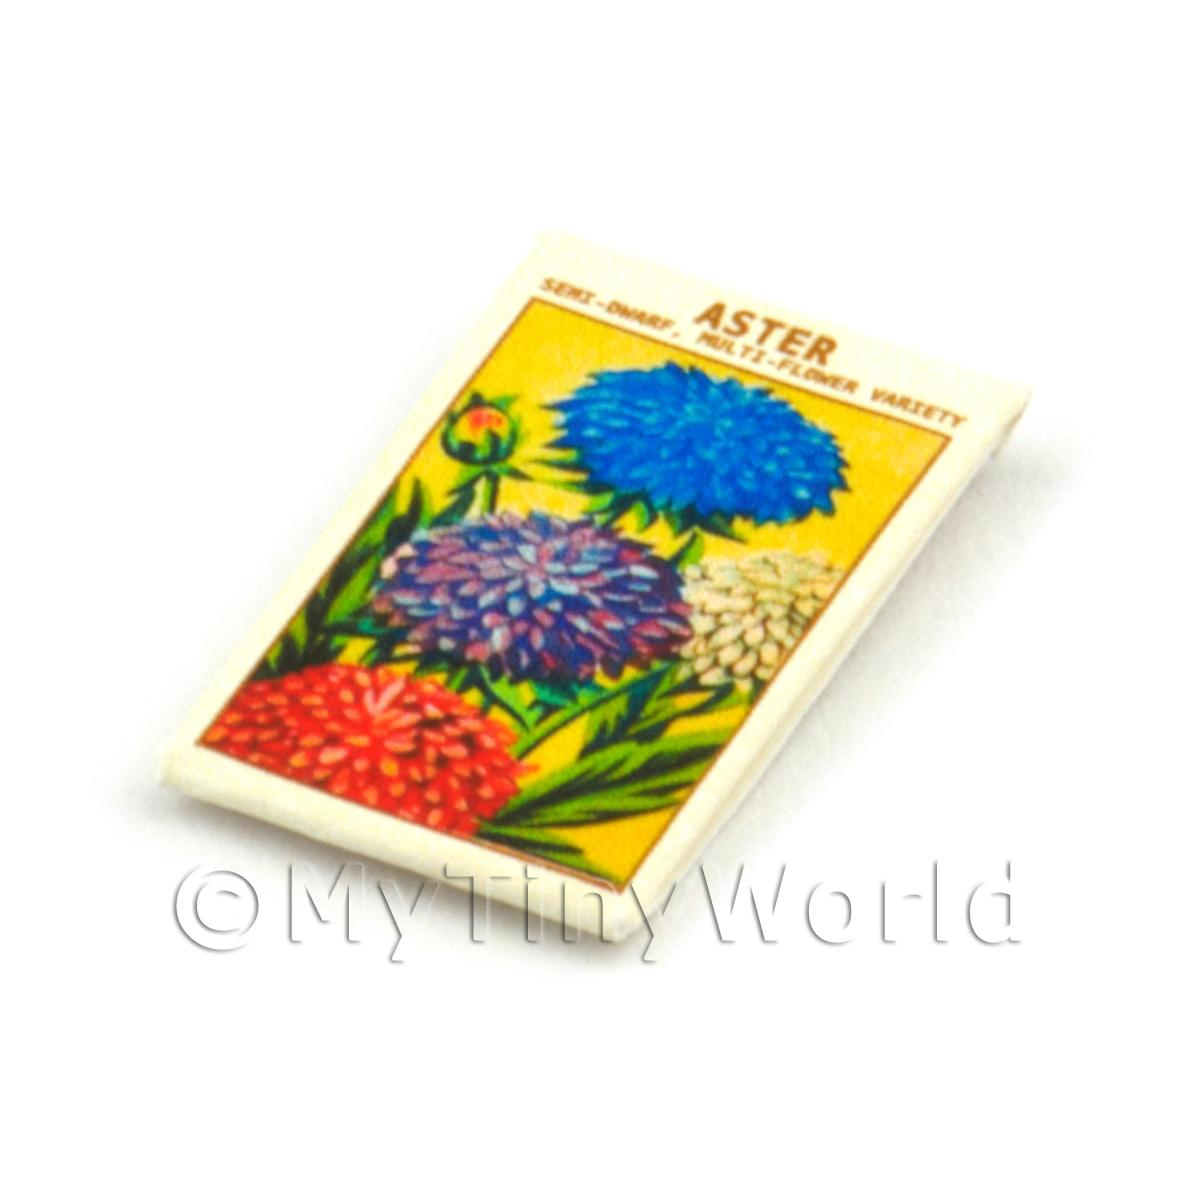 Dolls House Flower Seed Packet - Semi-Dwarf Aster